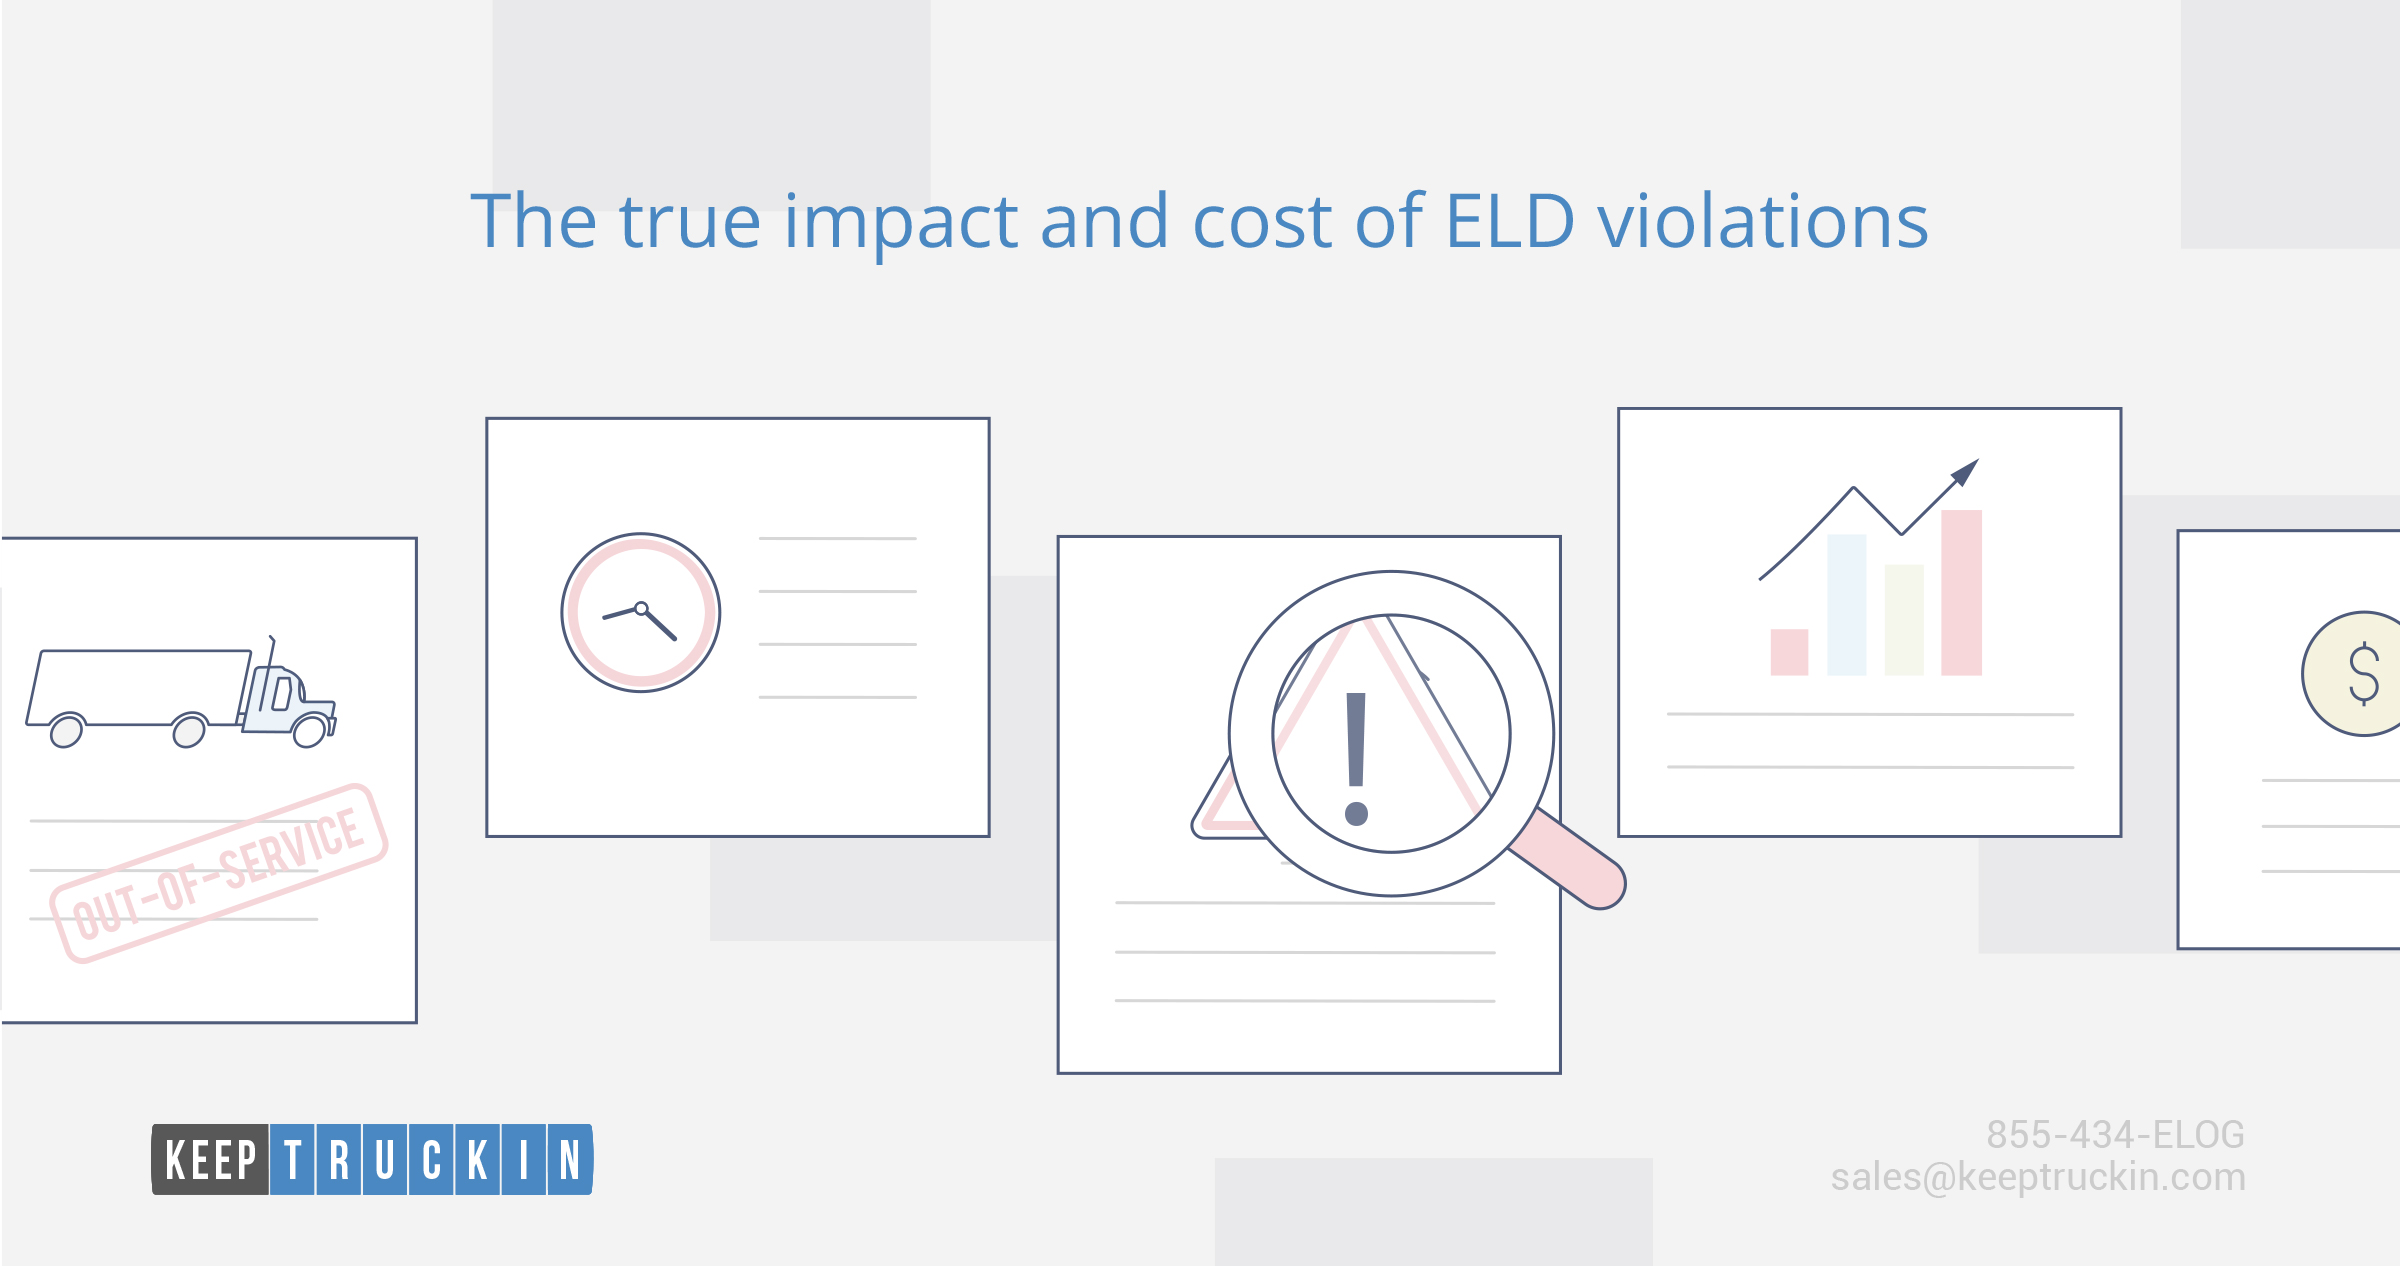 The true impact and cost of ELD violations